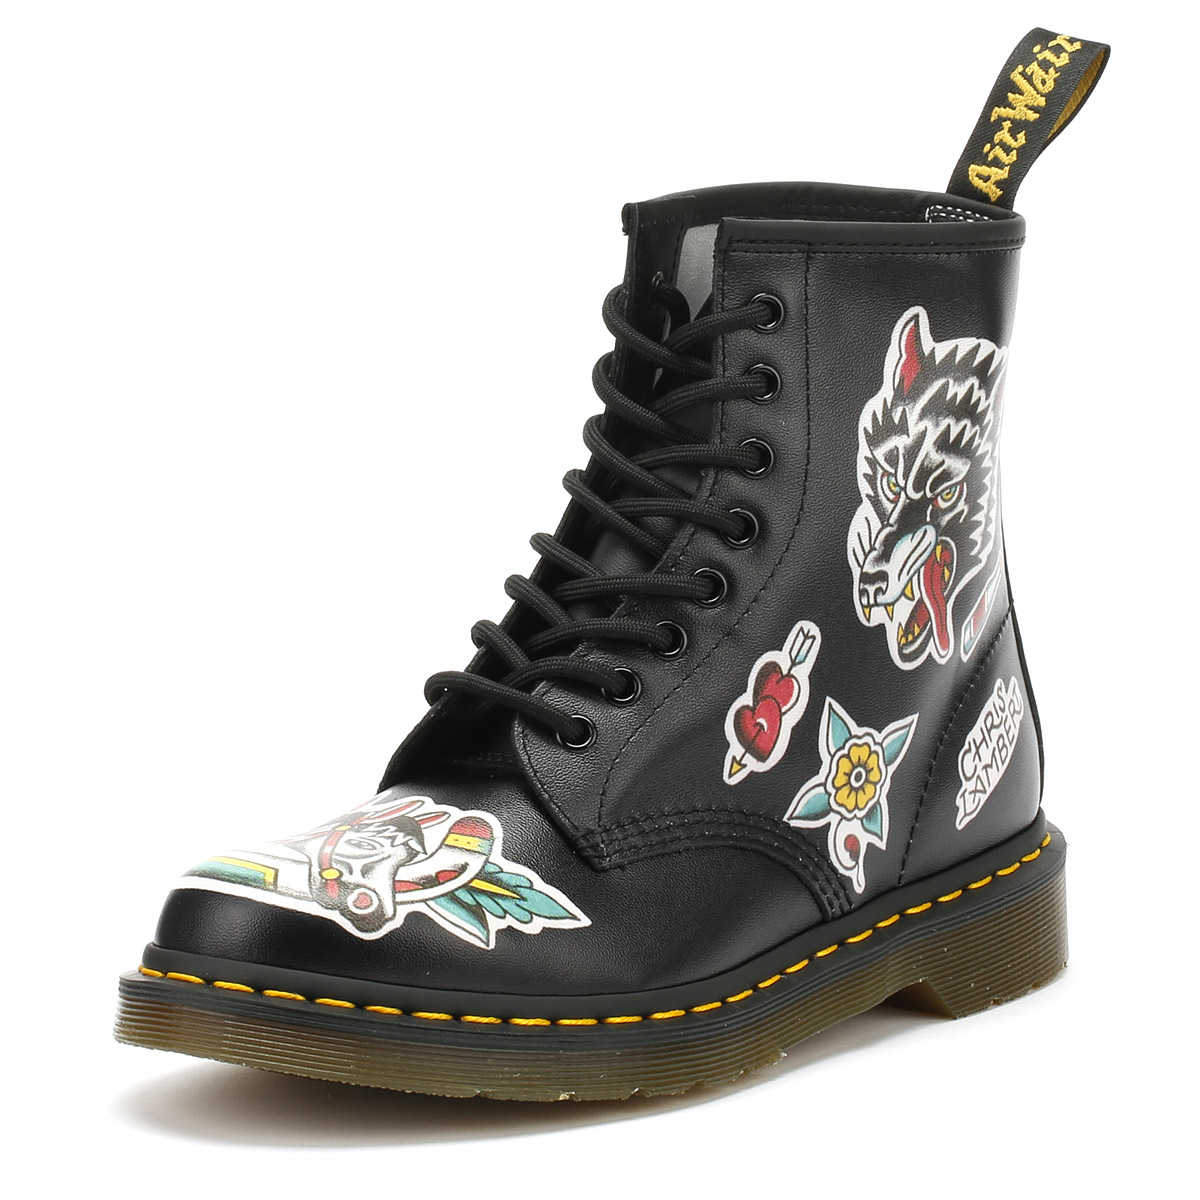 94afe0d73c Dr. Martens Womens Boots Black Backhand 1460 Chris Lambert UK Leather Shoes